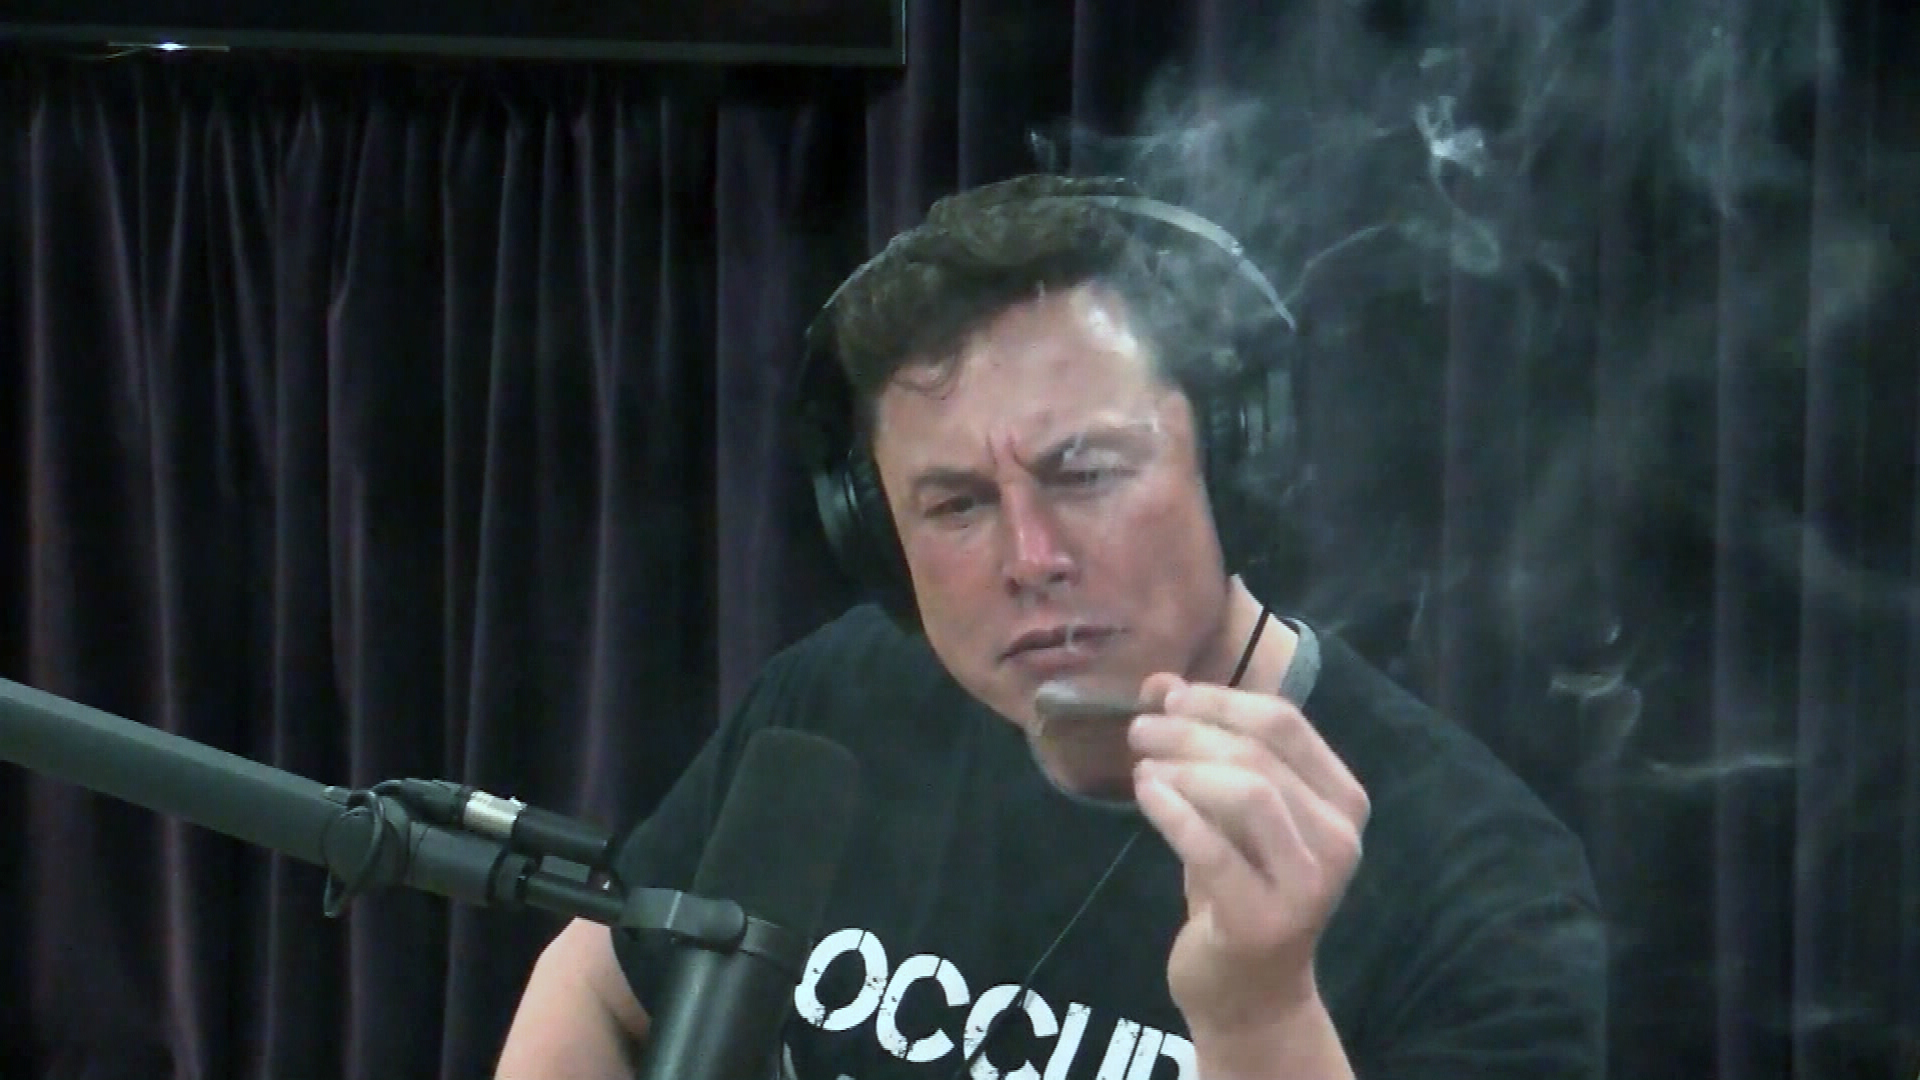 In 2018, Musk raised eyebrows when he smoked a joint on the Joe Rogan podcast.